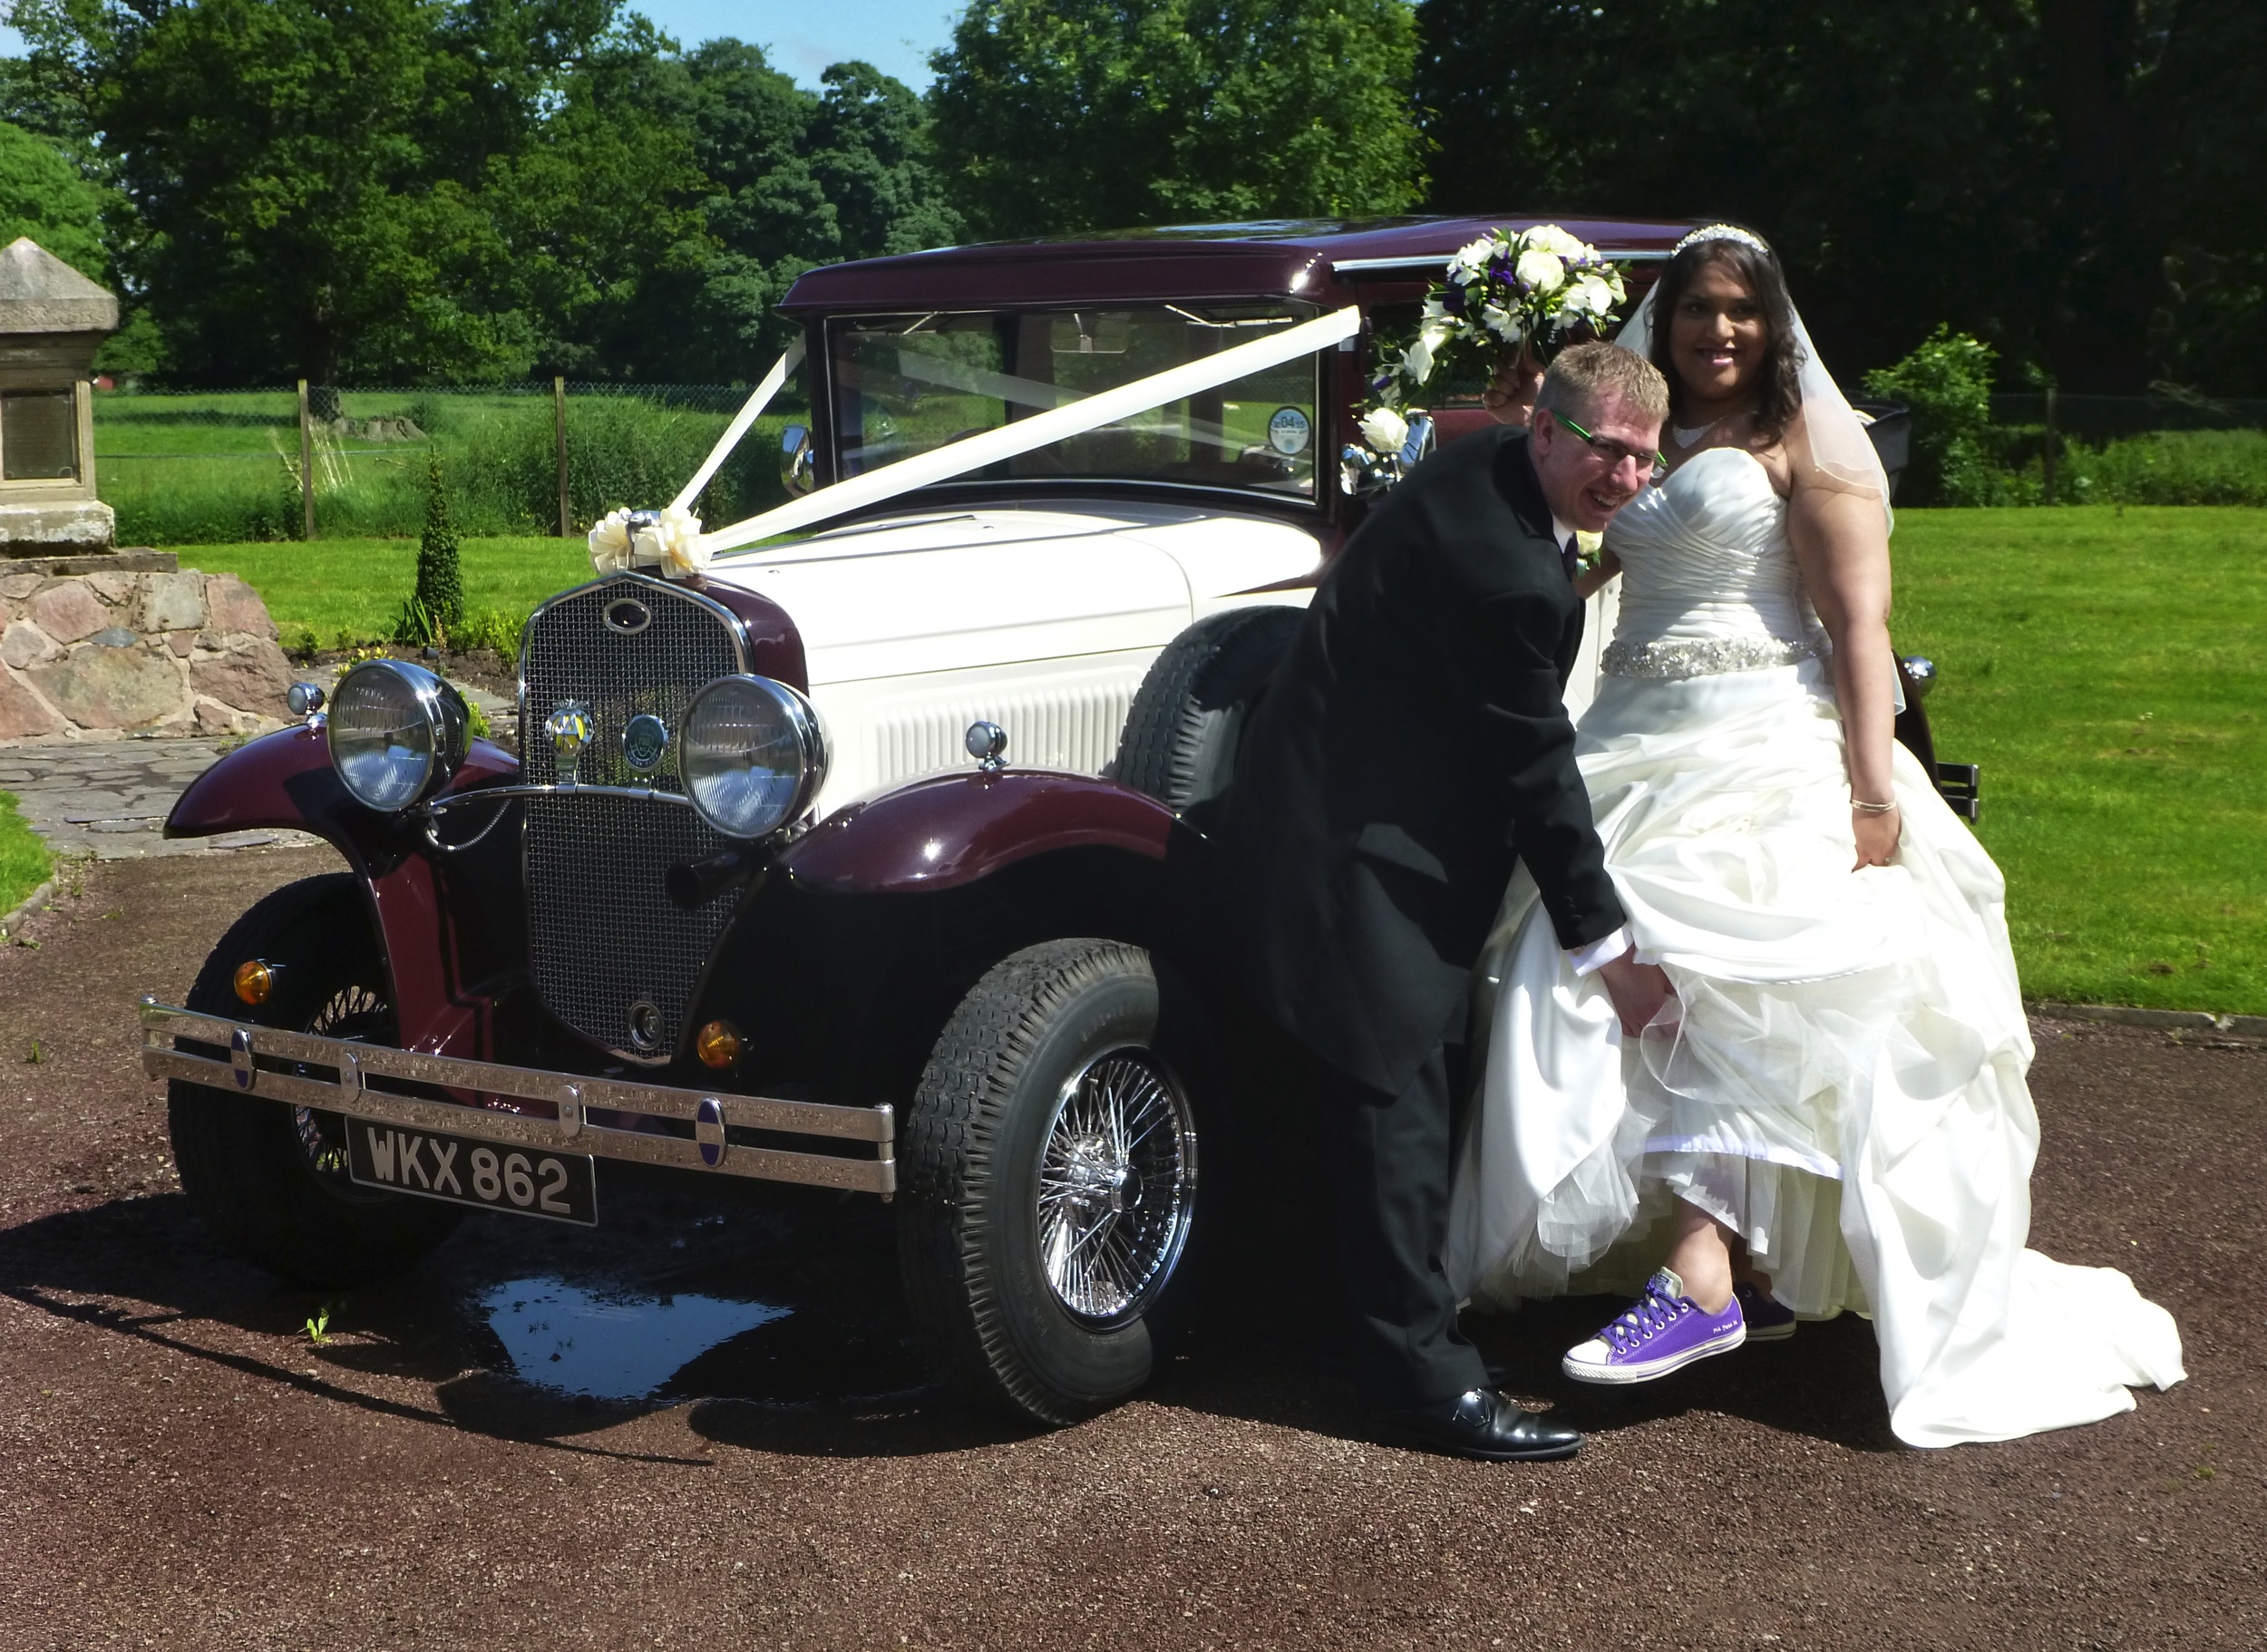 """Louise & Martin enjoying their """"fun"""" wedding. We get to see many different versions of footwear as the Bride exits the car. Louise was proud to display her comfortable trainers - matching the bridesmaids dresses. The puddle under the car is not a leak. The remains of the mornings downpour!"""